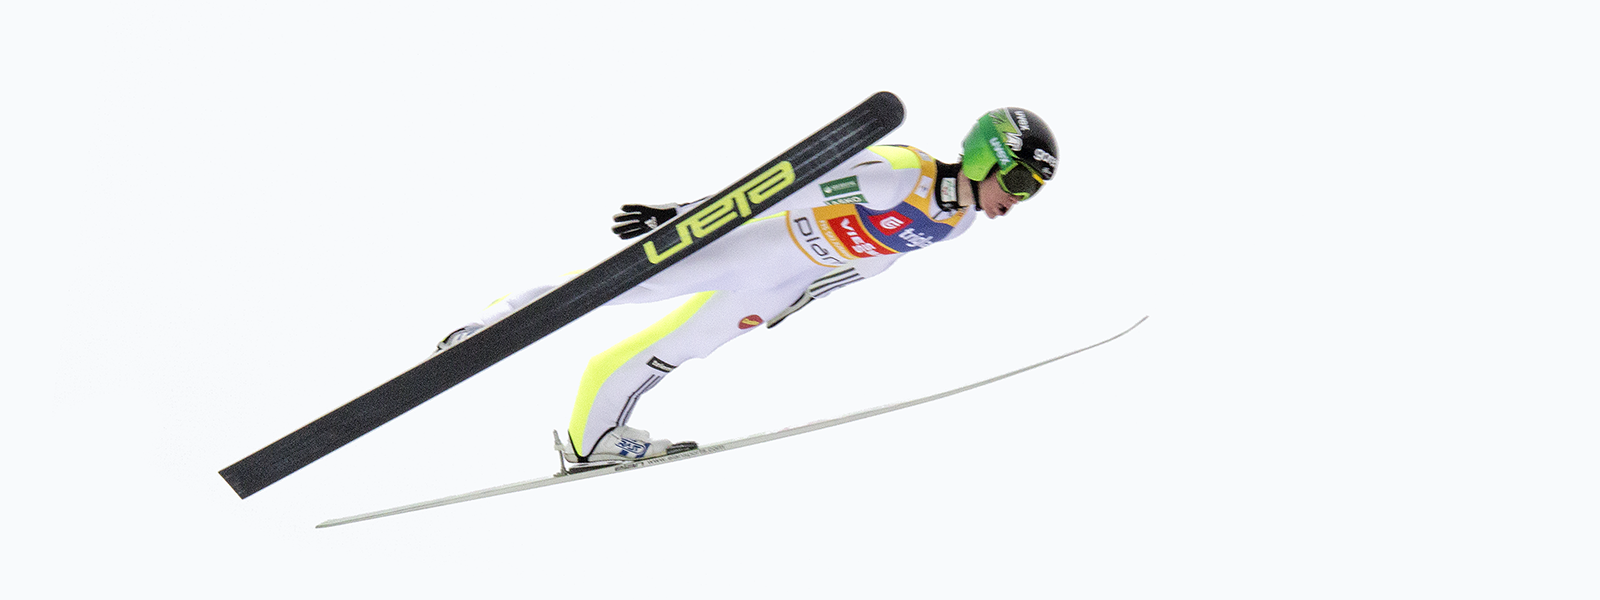 http://nd-ratece-planica.si/wp-content/uploads/2016/12/skakalec.png